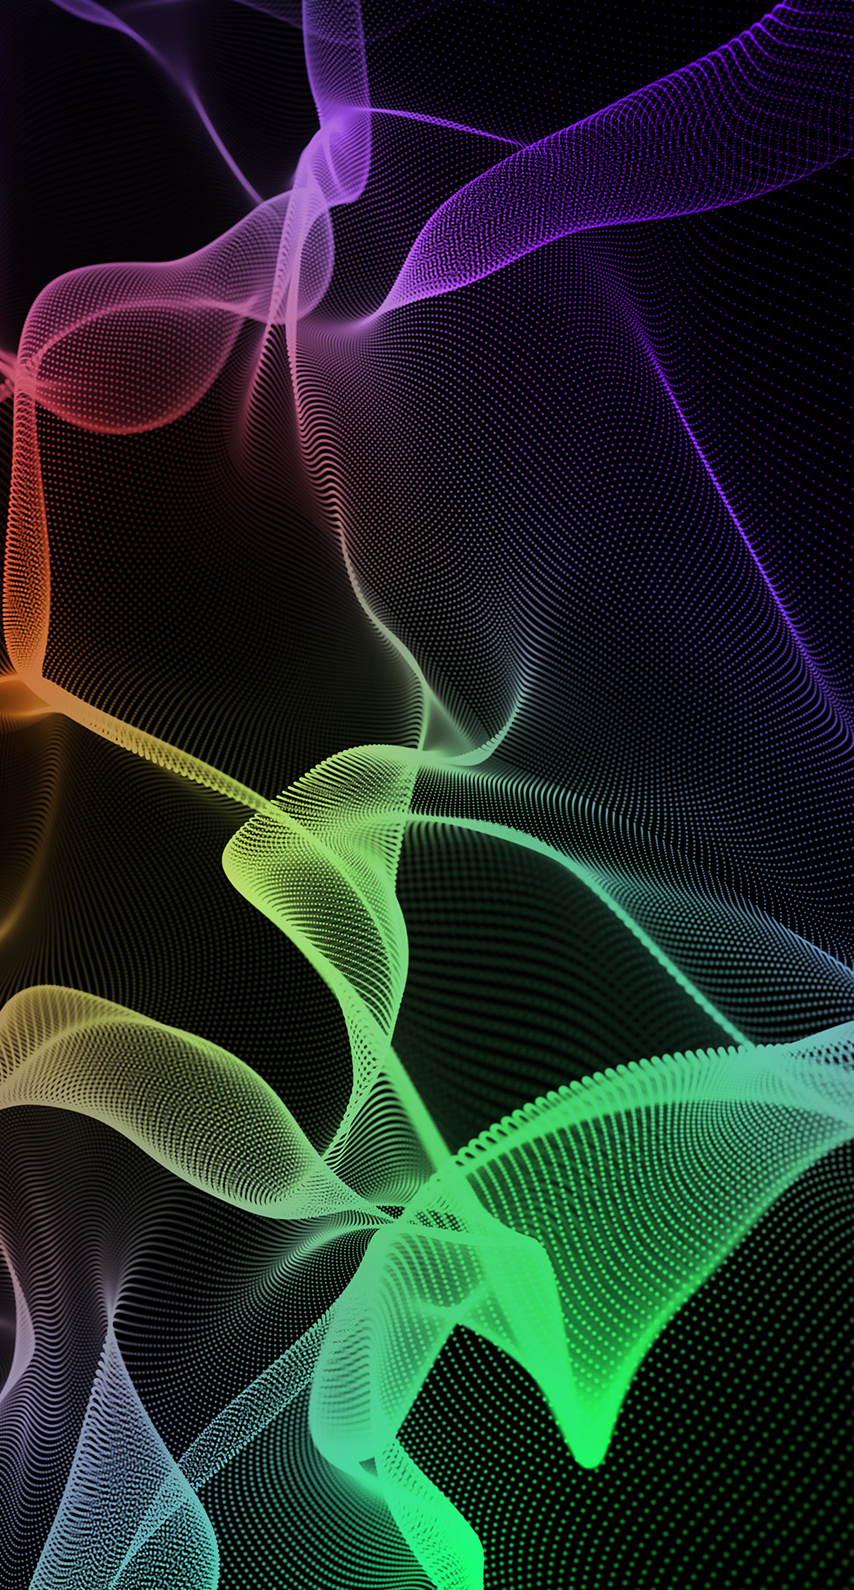 wave, graphic, design, background, insubstantial, wallpaper, motion, desktop, illustration